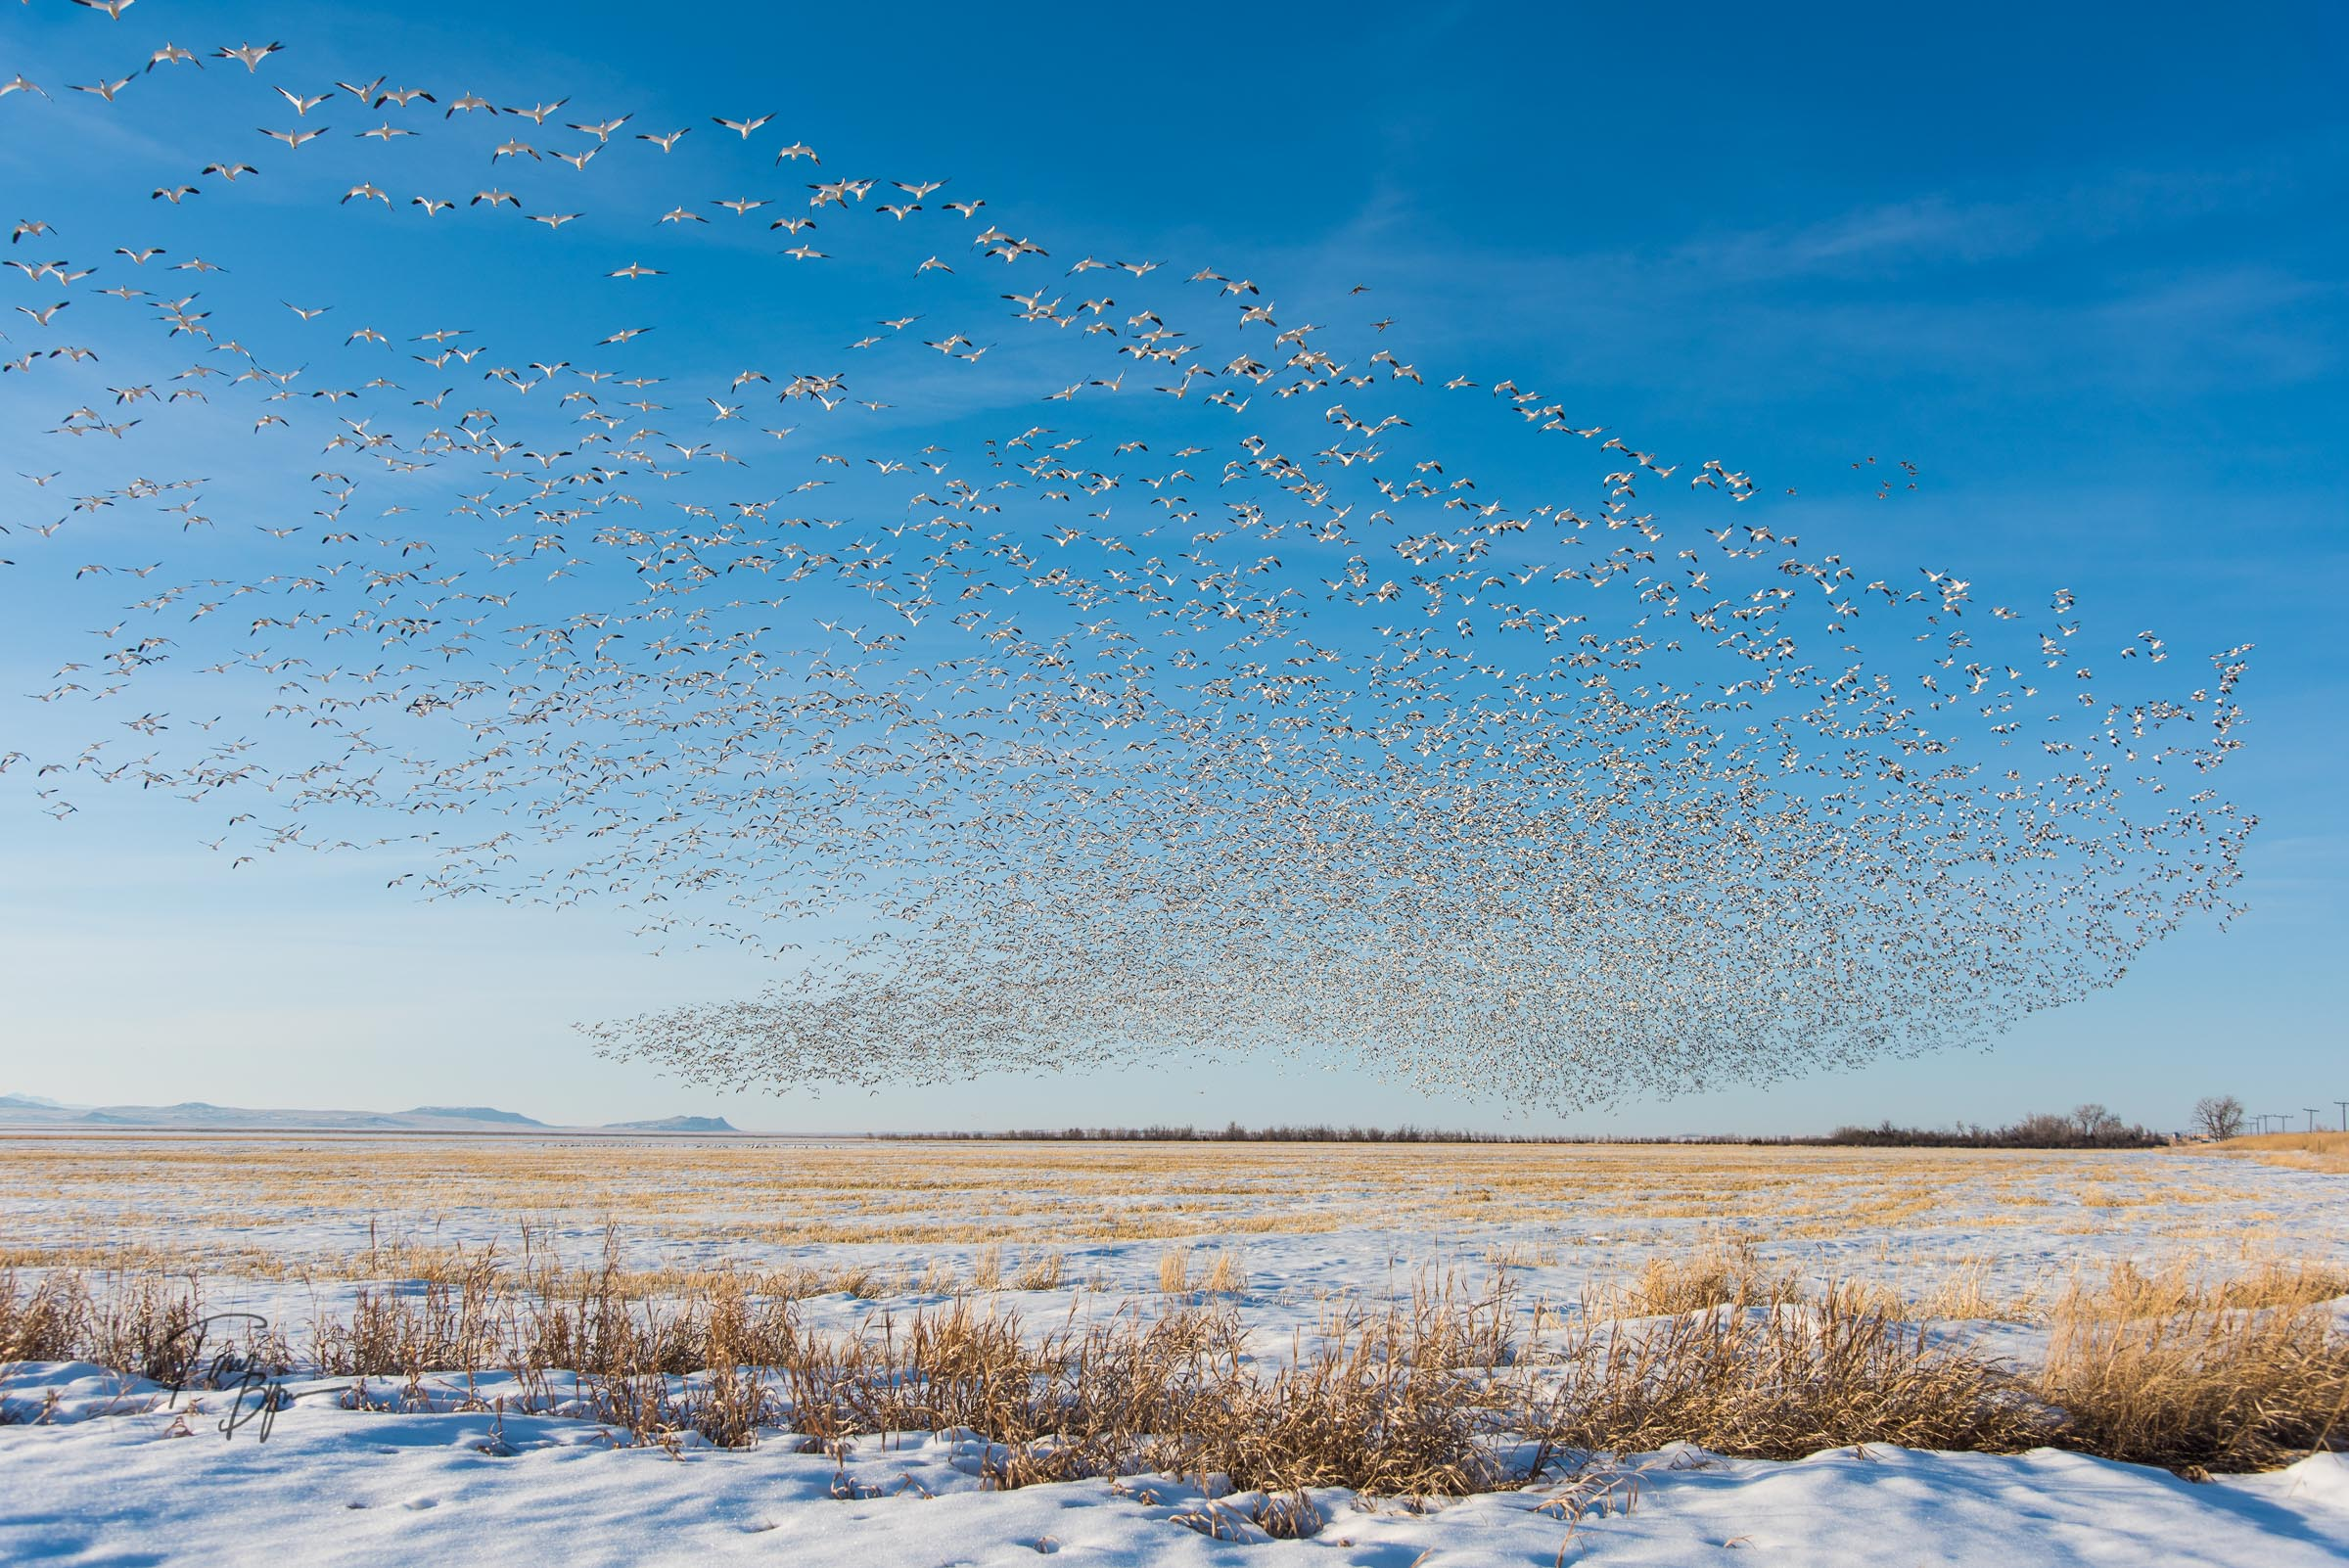 A cloud of mostly snow geese, with a few ducks mixed. © Tony Bynum